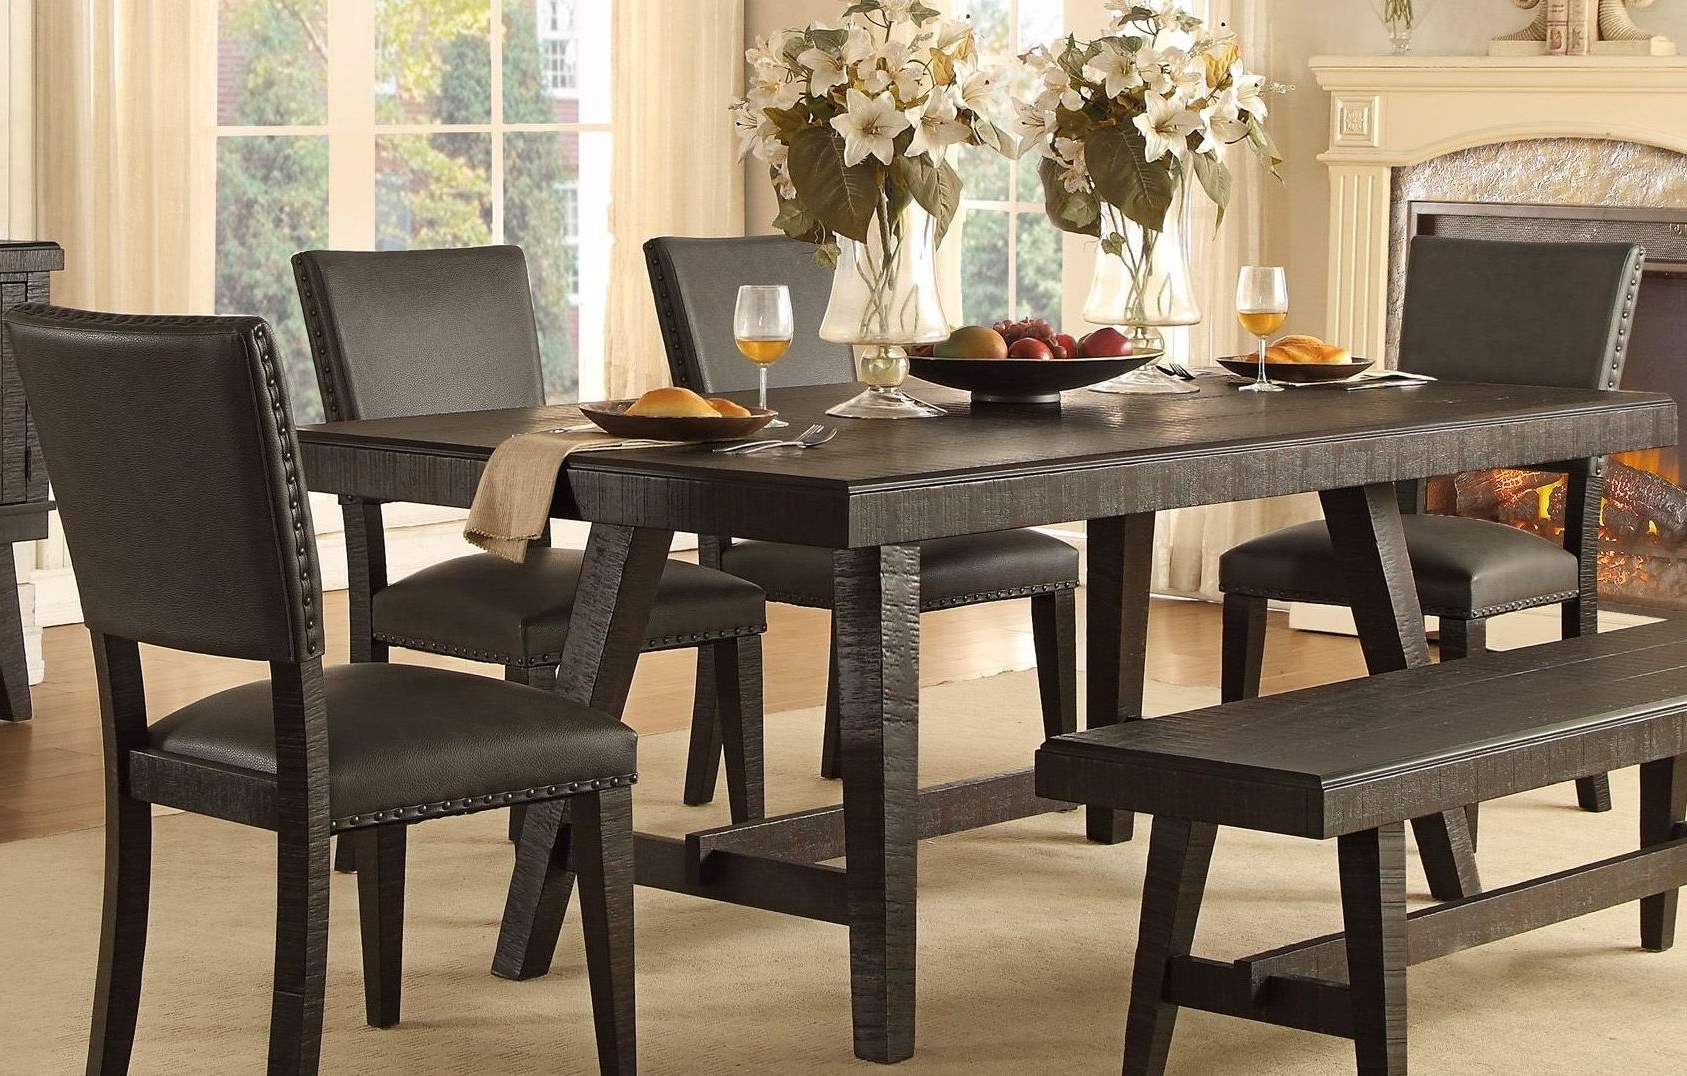 Dark Dining Room Tables Regarding Well Liked Homelegance Fenwick Dark Grey Dining Table – Fenwick Collection: 4 (Gallery 2 of 25)